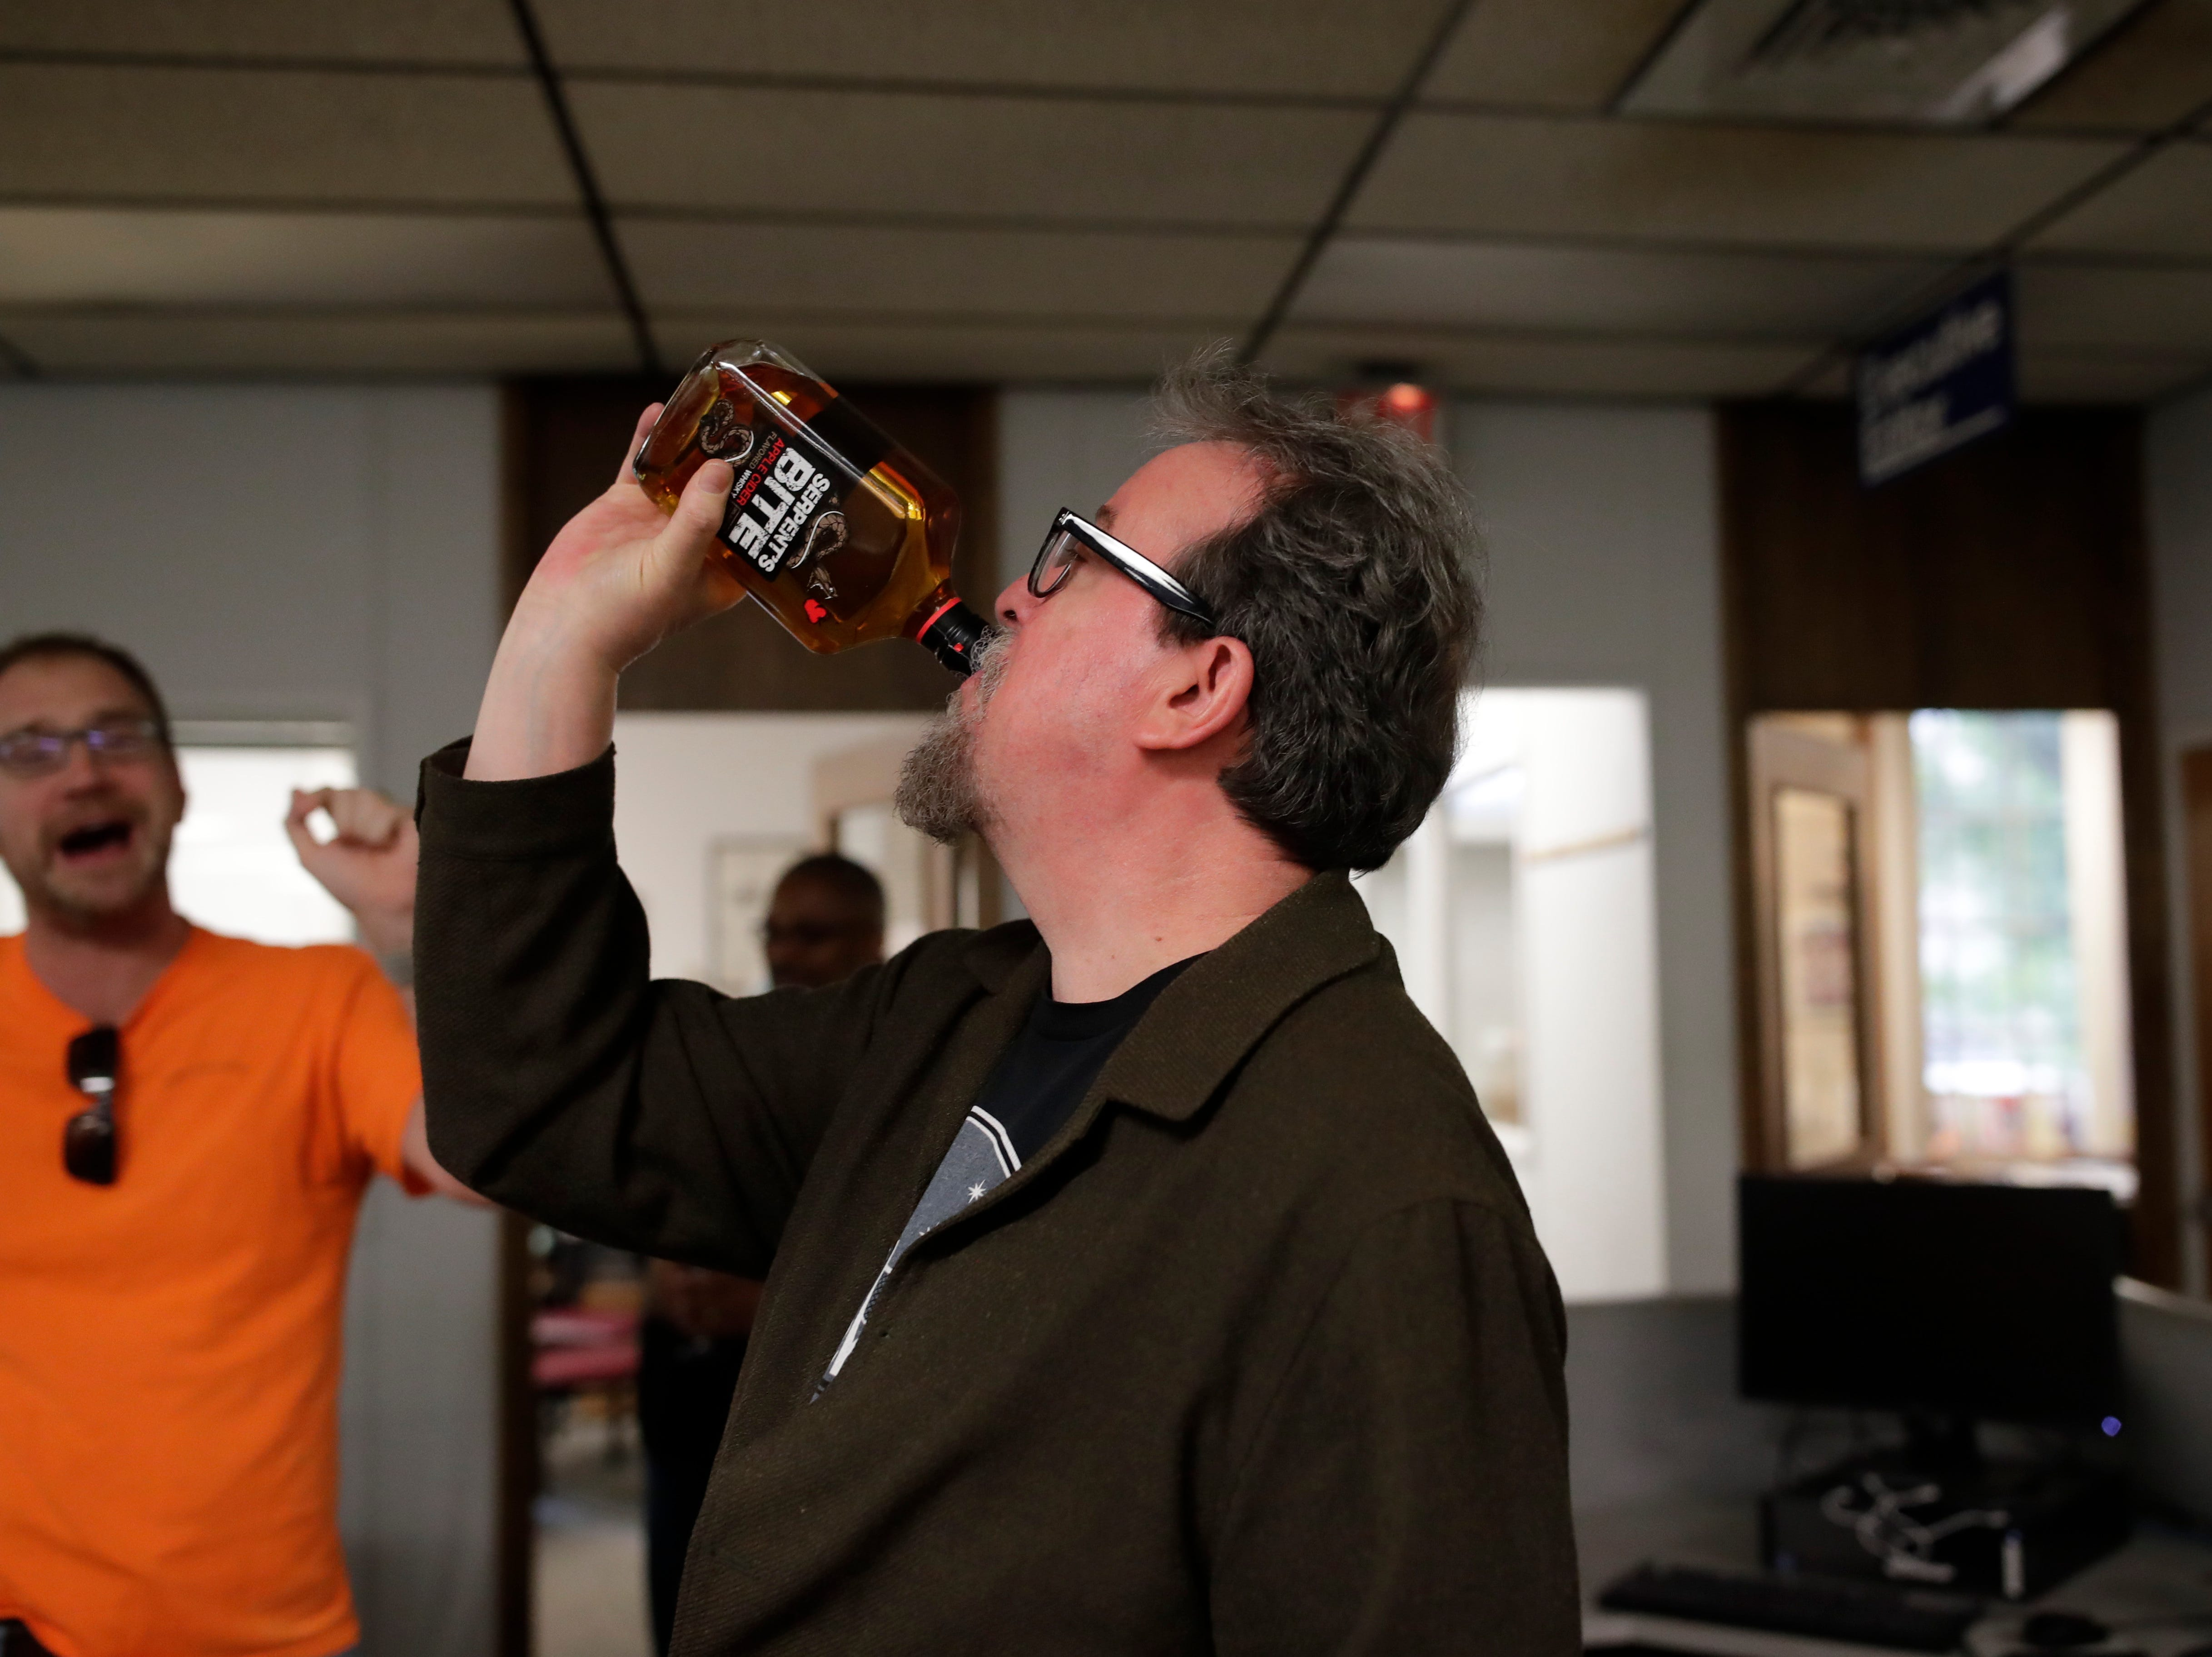 Former Arts and Entertainment Editor Mark Hinson pretends to take a swig from a bottle of whiskey presented to him by Executive Editor William Hatfield on Hinson's last day of work at the Tallahassee Democrat Wednesday, Jan. 2, 2019.